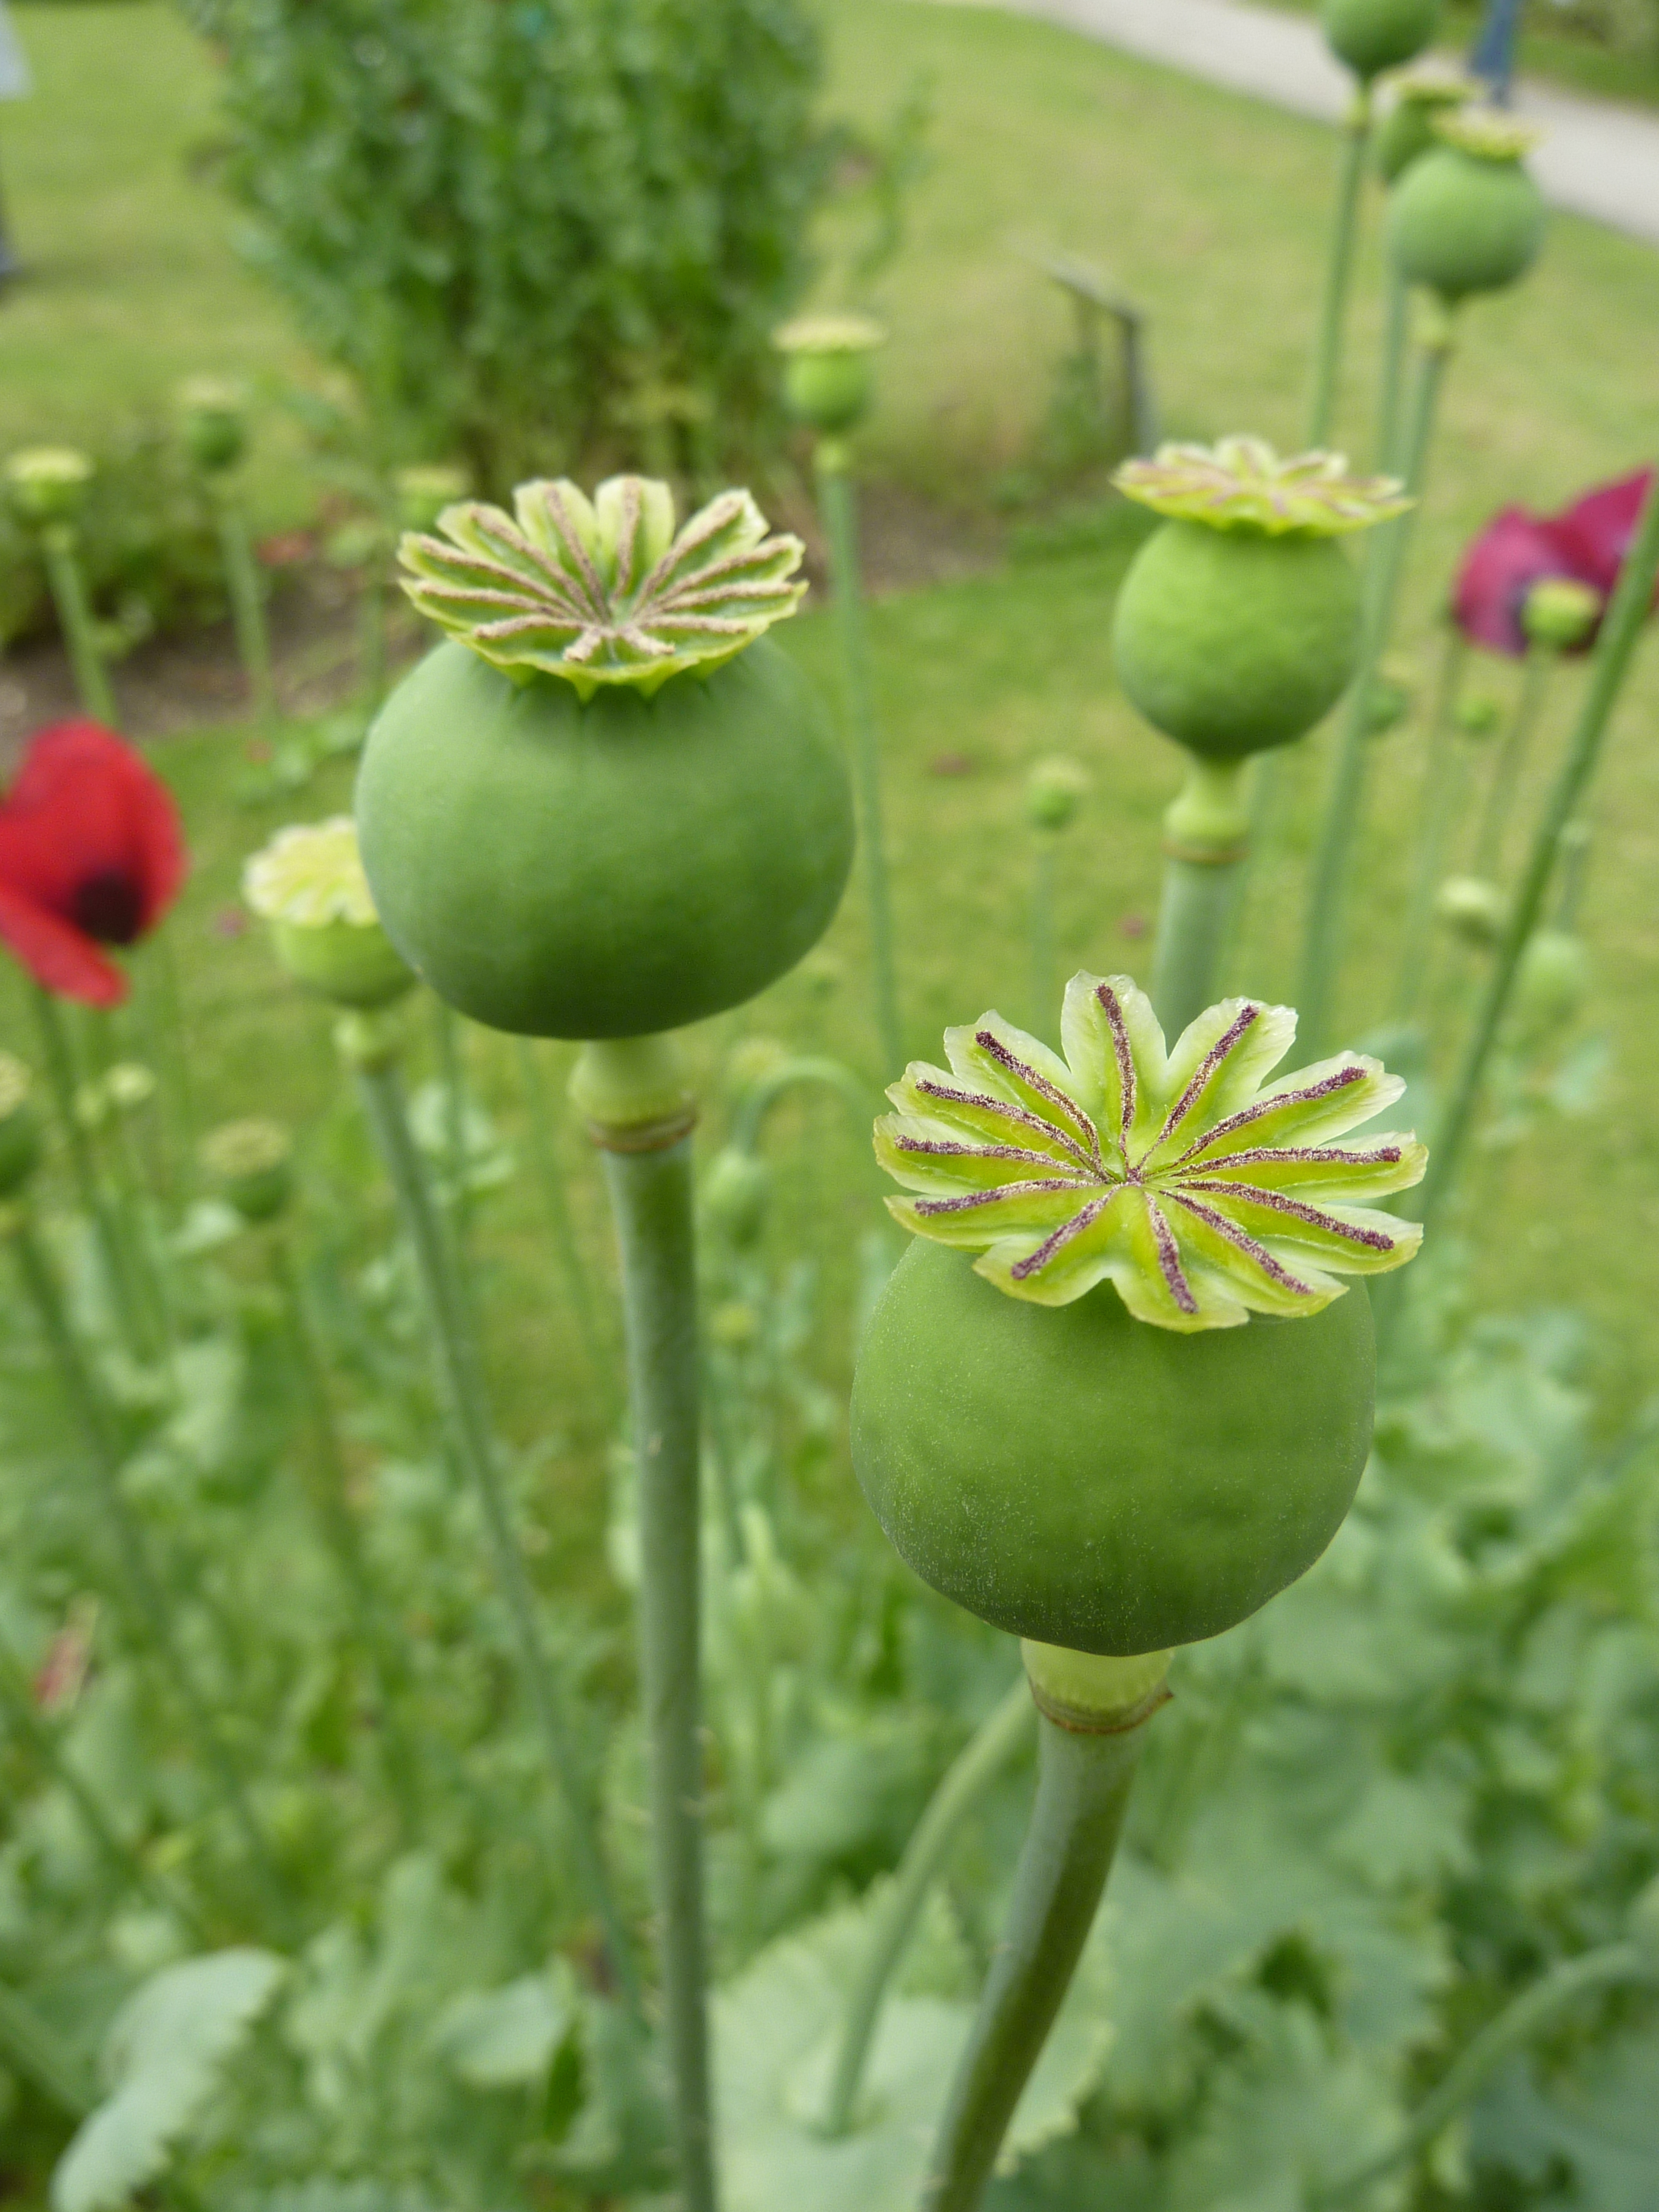 The large, round seed pod of the opium poppy plant can be harvested for different uses. Chemicals extracted from the plant are used in the production of painkilling medications. (credit: Courtesy of Wikimedia Commons)